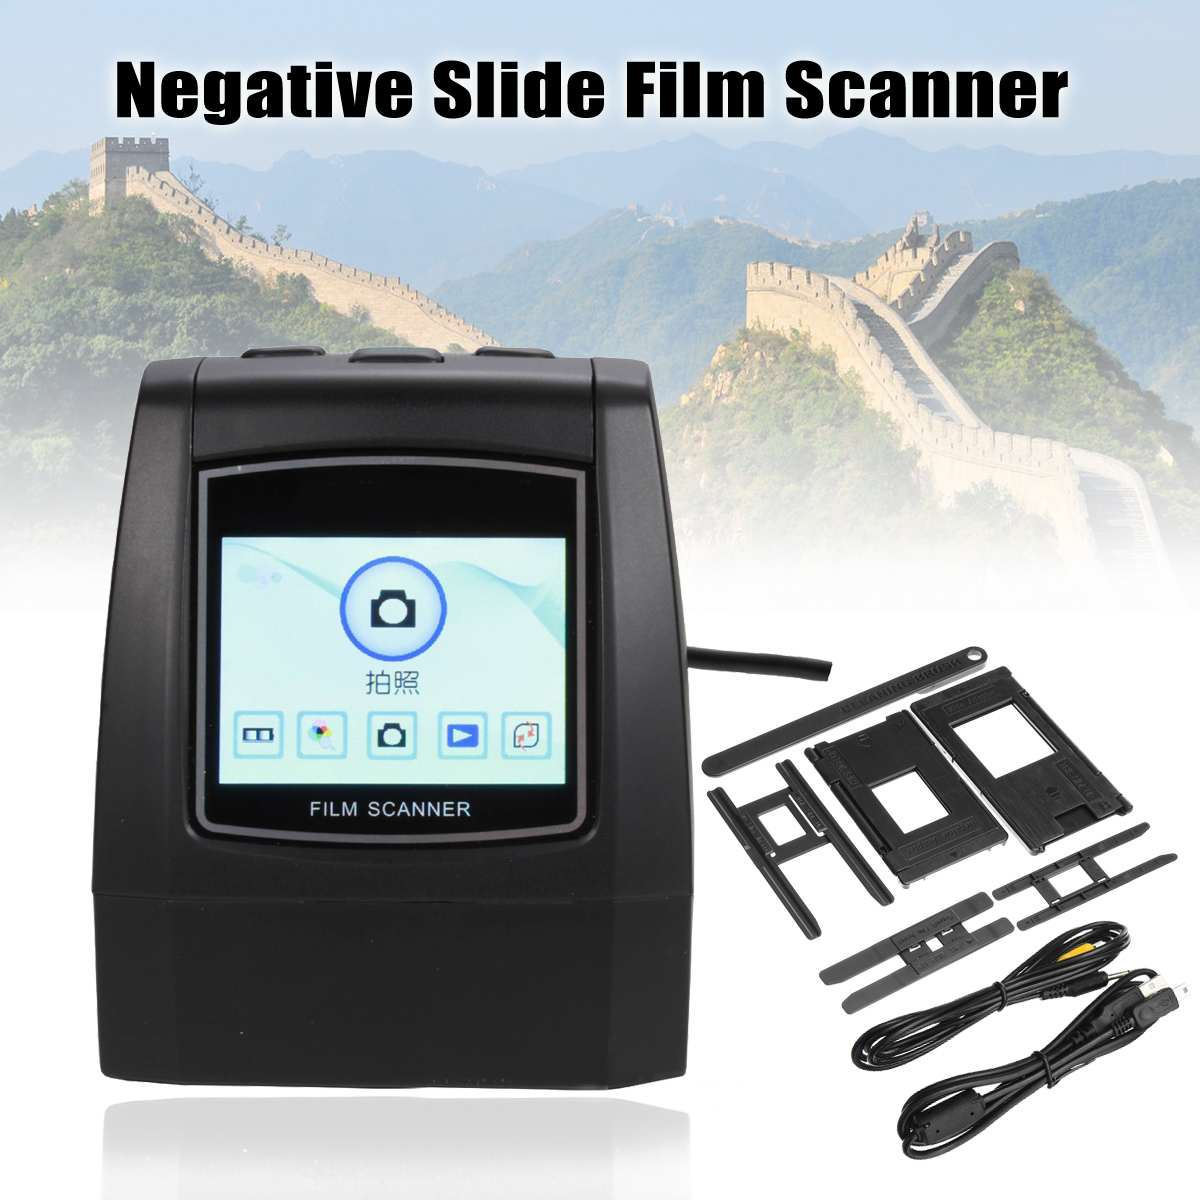 35mm 135/126/110/8mm High Resolution Negative Slide Film Scanner Photo Digitalizer Analog to Digital File 14MP/22MP bfq262a to 126